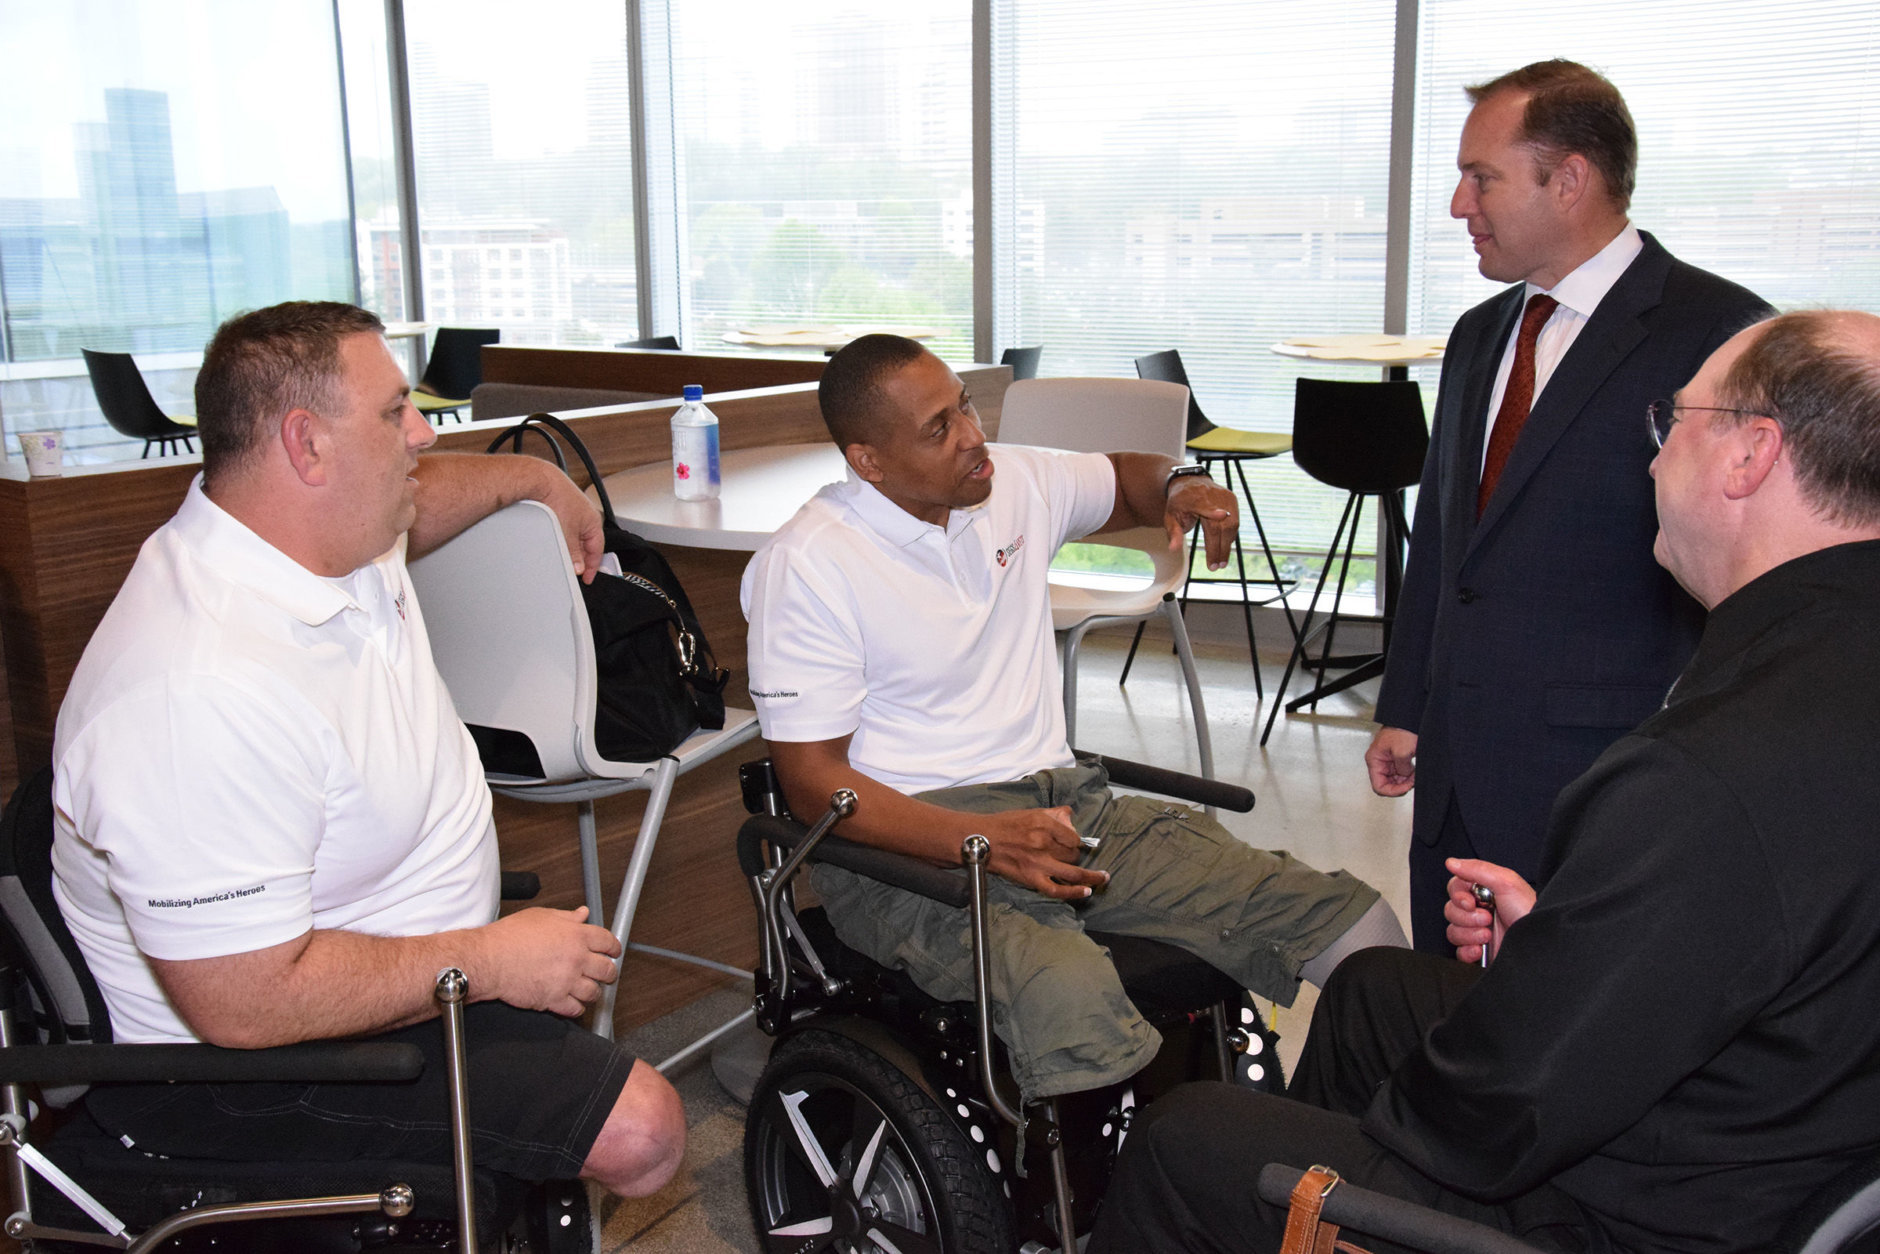 Pictured here are recipients of Segway chairs, funded by the PenFed Foundation: from left, Staff Sgt. Dustin Tuller and retired Master Sgt. Cedric King talk with PenFed President and CEO James Schenck and Jerry Kerr of Seg4Vets, far right. (Courtesy PenFed)